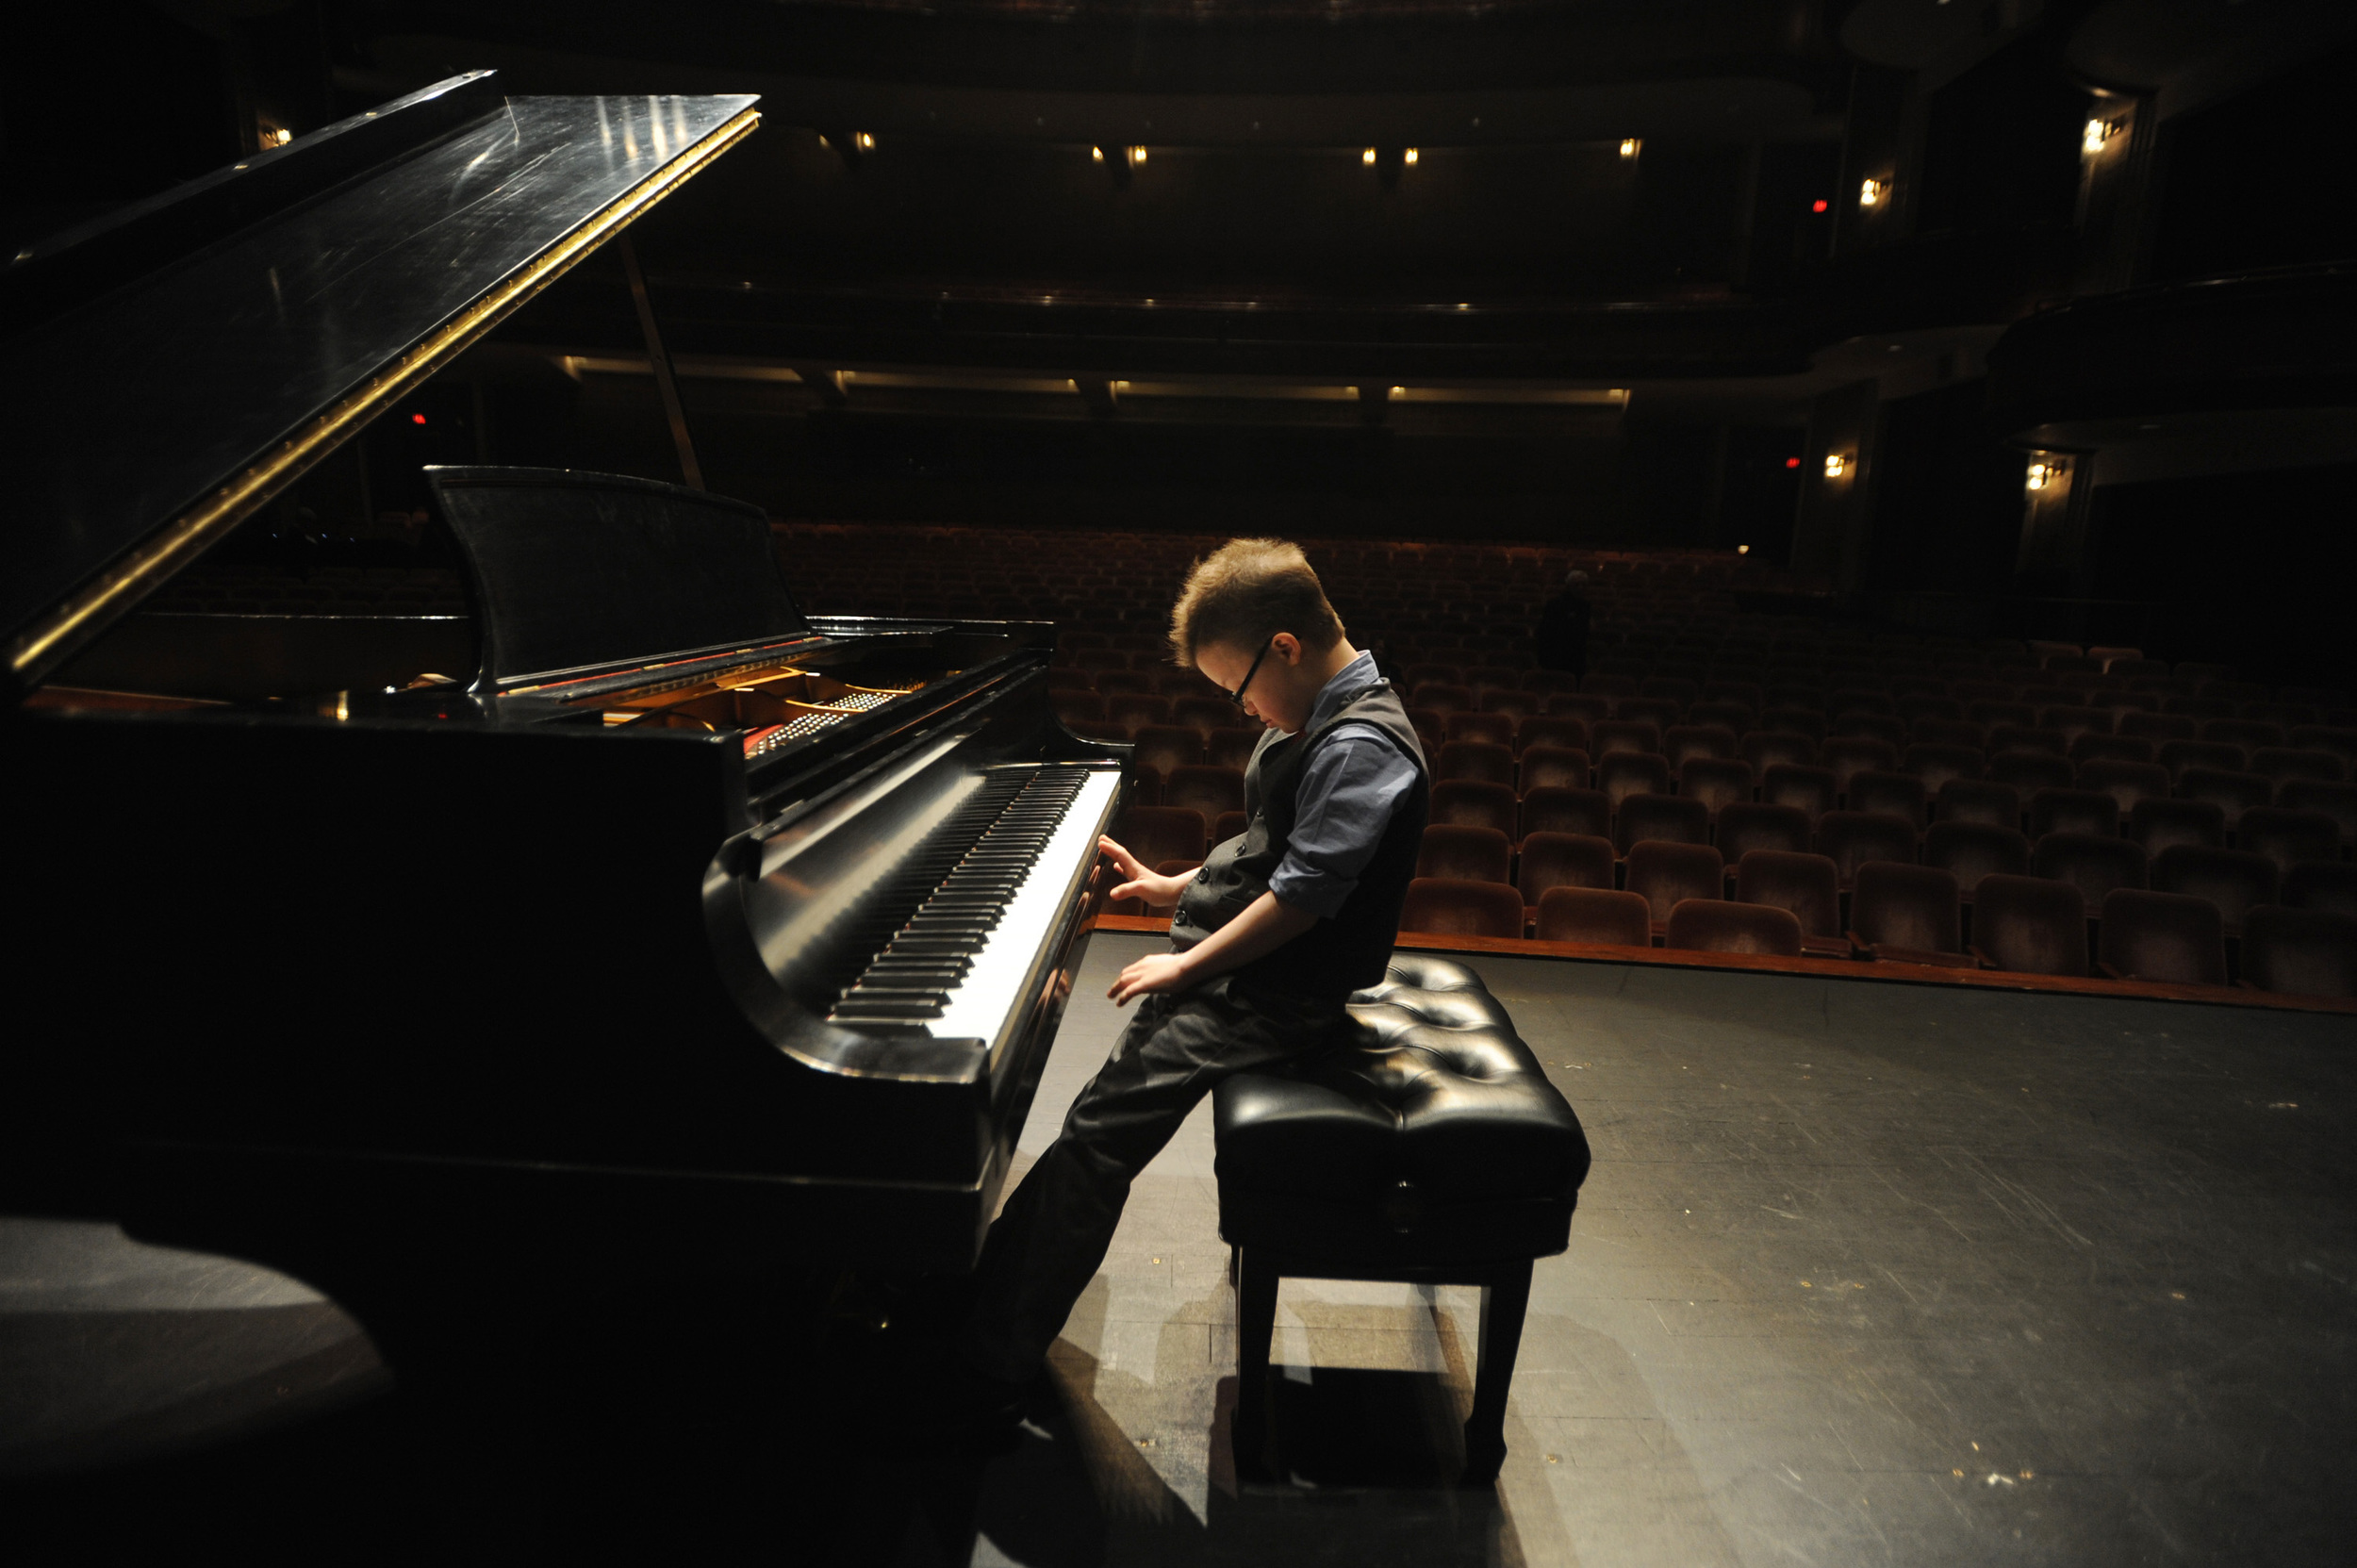 Peter Rosset, 11, who has been diagnosed with acute lymphoblasic leukemia, gives a private piano performance for Greenville Symphony Orchestra Conductor Edvard Tchivzhel at the Peace Center.  Rosset's Make-A-Wish Foundation wish is to receive a baby grand piano.  (March 25, 2012)